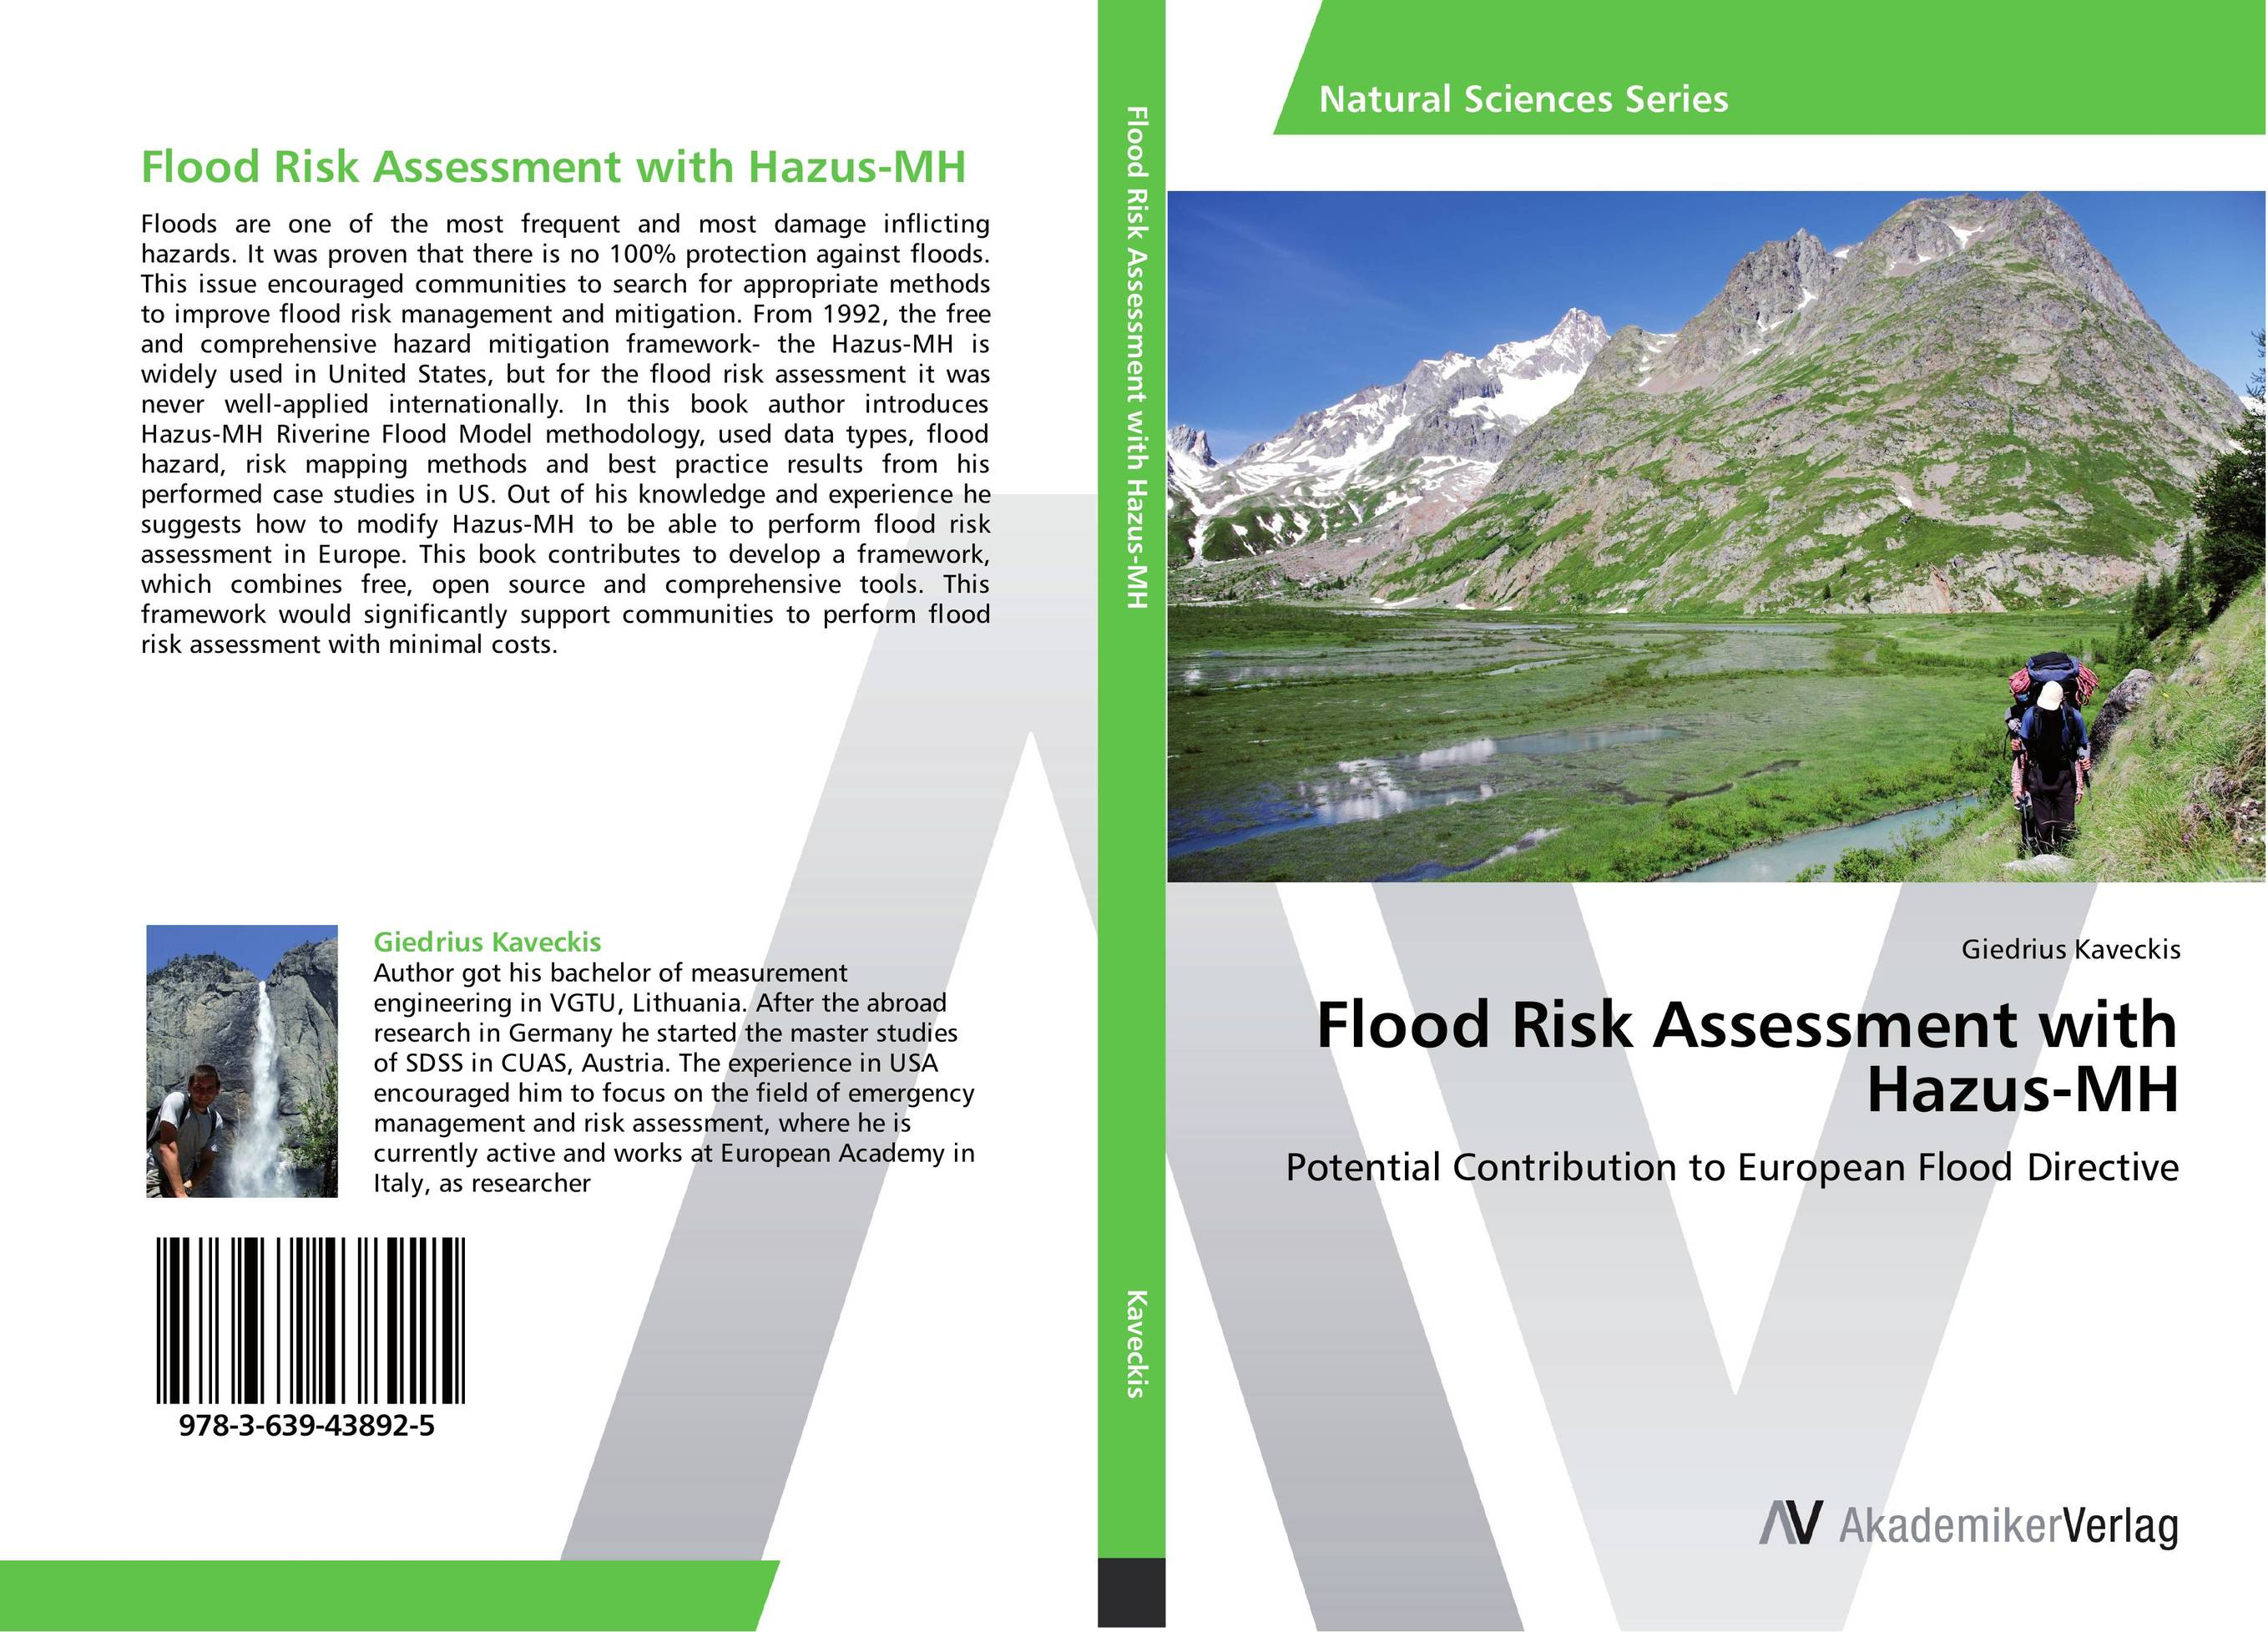 Flood Risk Assessment with Hazus-MH